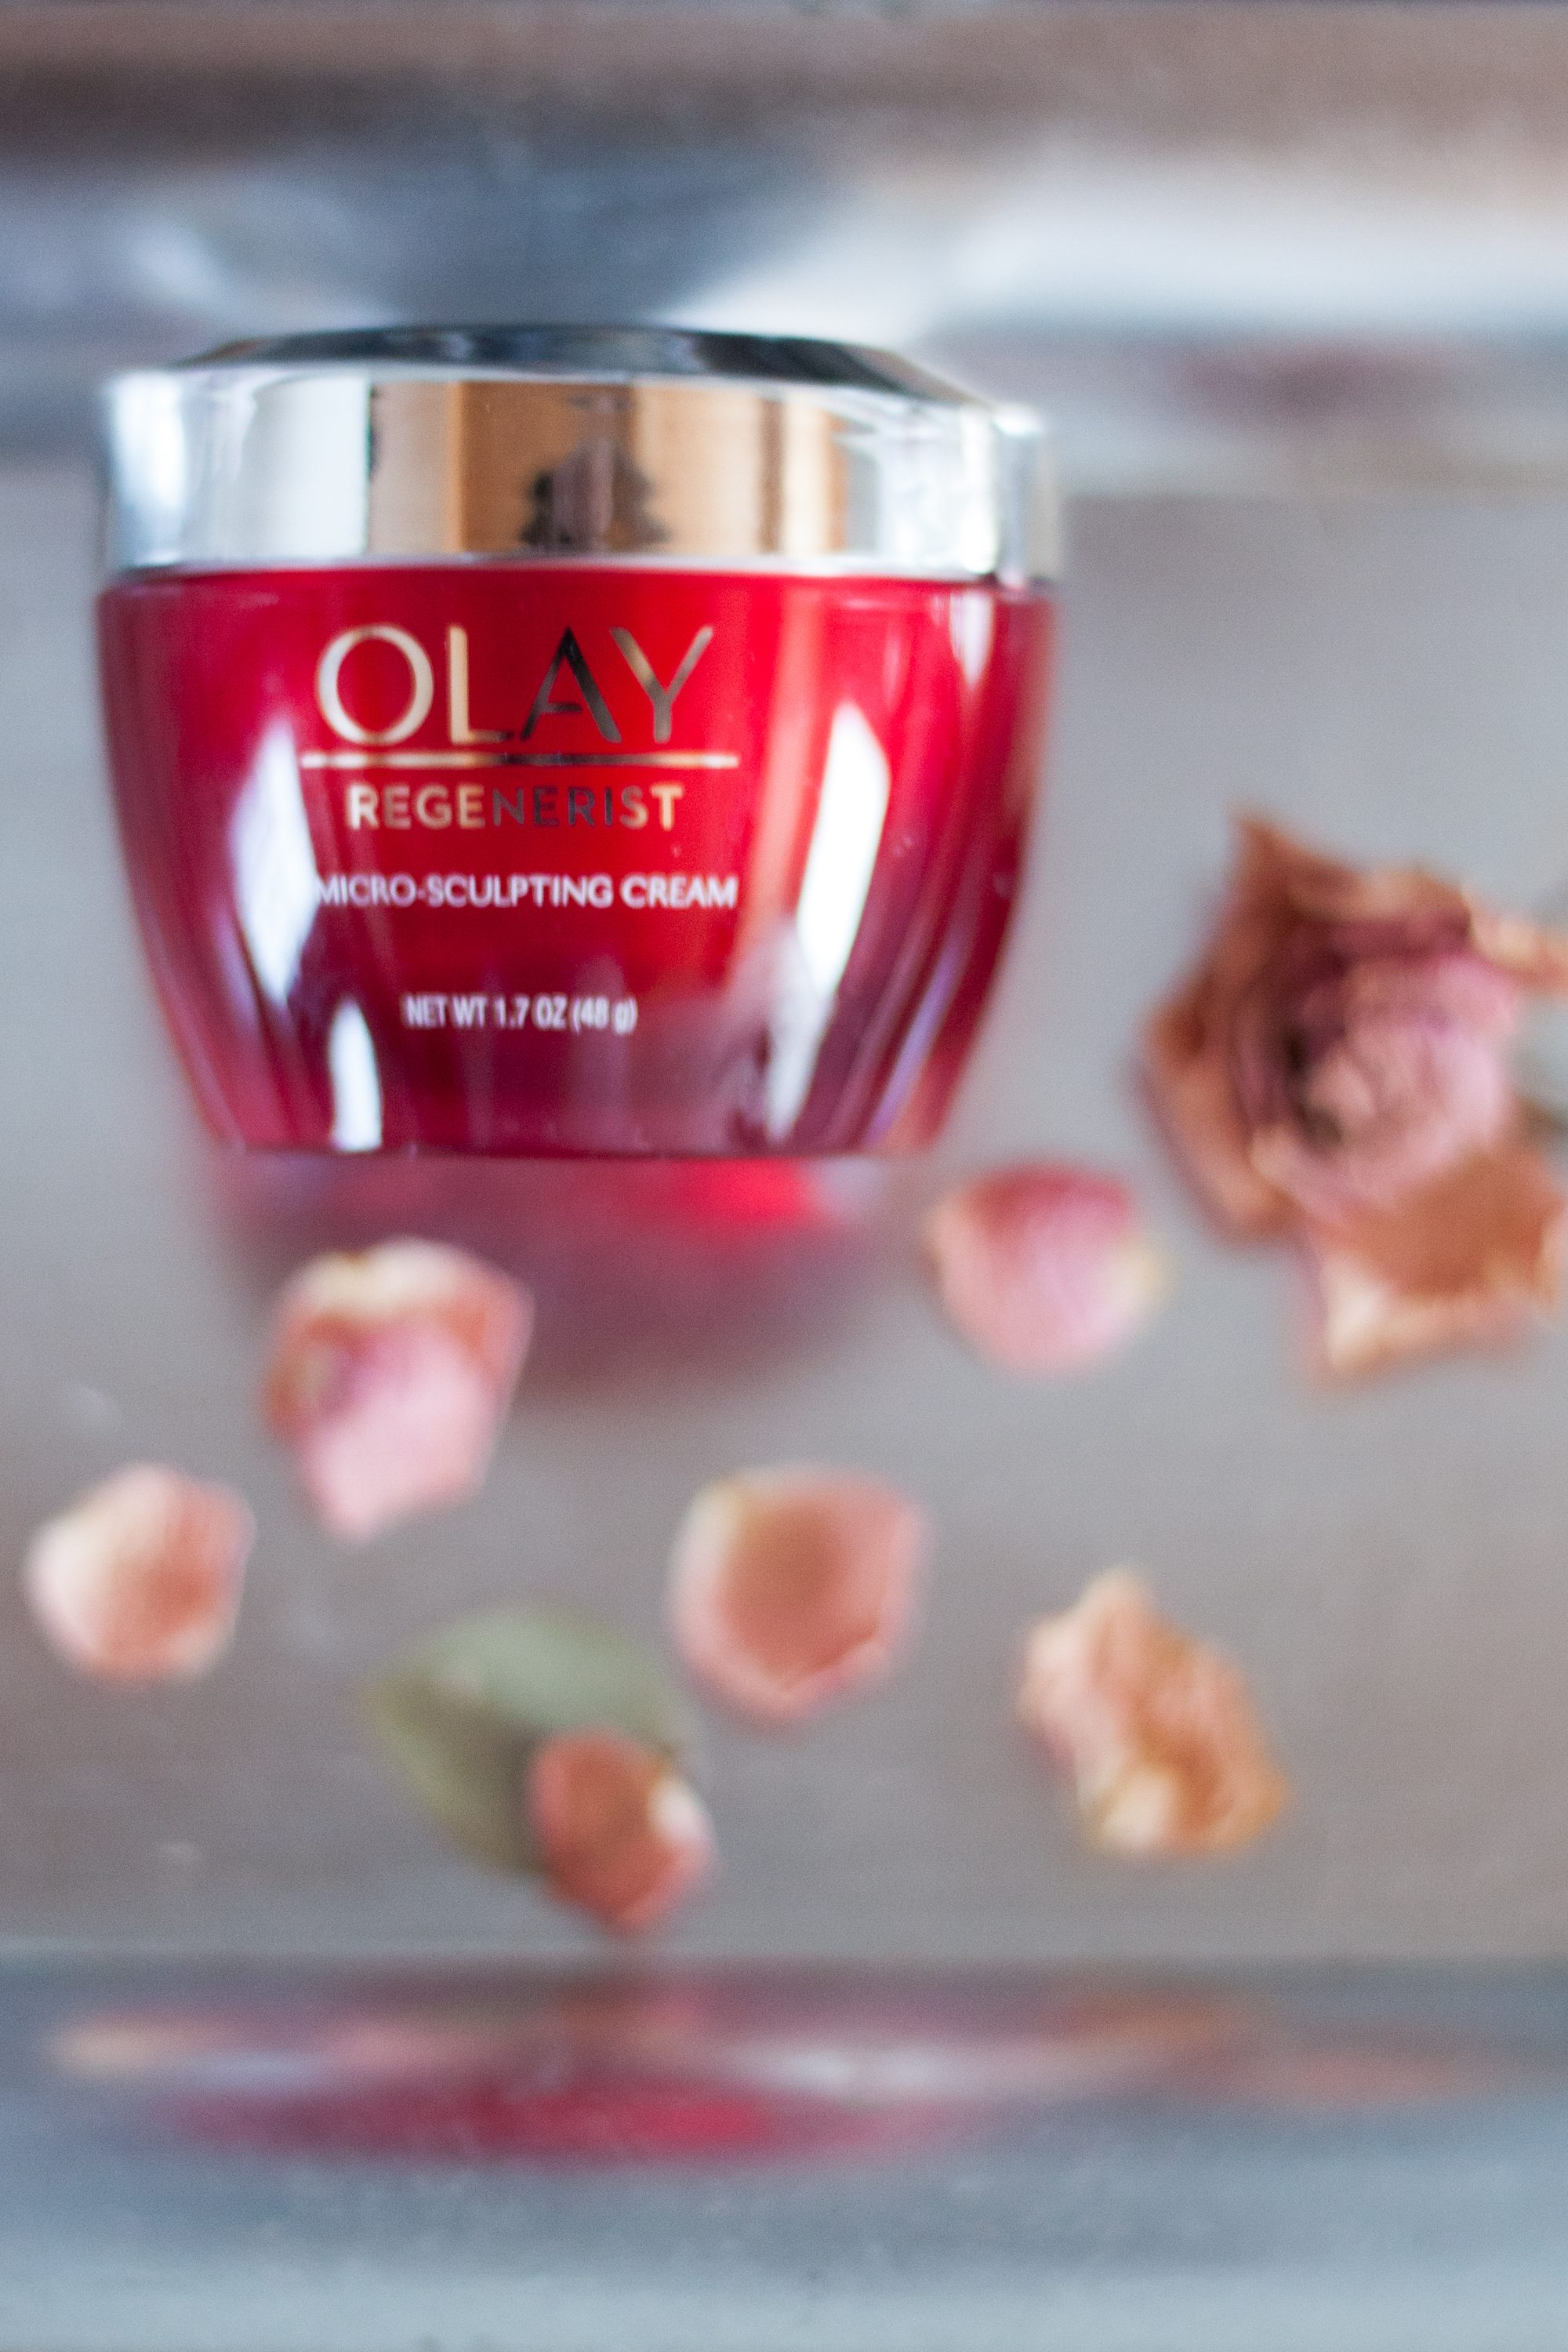 anti aging, olay regenerist anti aging cream, olay cream , best anti aging cream, olay regenerist micro sculpting cream, best anti wrinkle cream, olay regenerist serum, anti wrinkle cream, olay regenerist reviews, best anti aging products, oil of olay regenerist, anti aging skin care, olay regenerist micro sculpting serum anti aging products, olay micro sculpting cream skin repair cream, olay regenerist night cream, regenerist micro sculpting cream, olay regenerist micro sculpting cream reviews, anti aging moisturizer, olay regenerist moisturizer, hydrating moisturizer, olay micro sculpting serum, hydrating face cream, olay regenerist cream anti aging skin care products, olay regenerist products micro sculpting cream, olay regenerist micro sculpting regenerist cream, olay regenerist microsculpting cream, anti aging products that work, olay regenerist sculpting cream, regenerist products, olay regenerist micro sculpting cream, 1.7 oz anti aging facial products, olay micro sculpting skin repair products, olay sculpting cream, regenerist micro sculpting cream review, olay microsculpting cream, regenerist micro sculpting cream reviews, olay regenerist micro regenerist micro sculpting cream moisturizer, olay regenerist micro sculpting cream coupon, regenerist face cream, olay regenerist micro sculpting cream 1.7 ounce regenerist sculpting cream, regenerist micro sculpting, microsculpting cream, what is regenerist micro sculpting cream, regenerist microsculpting cream